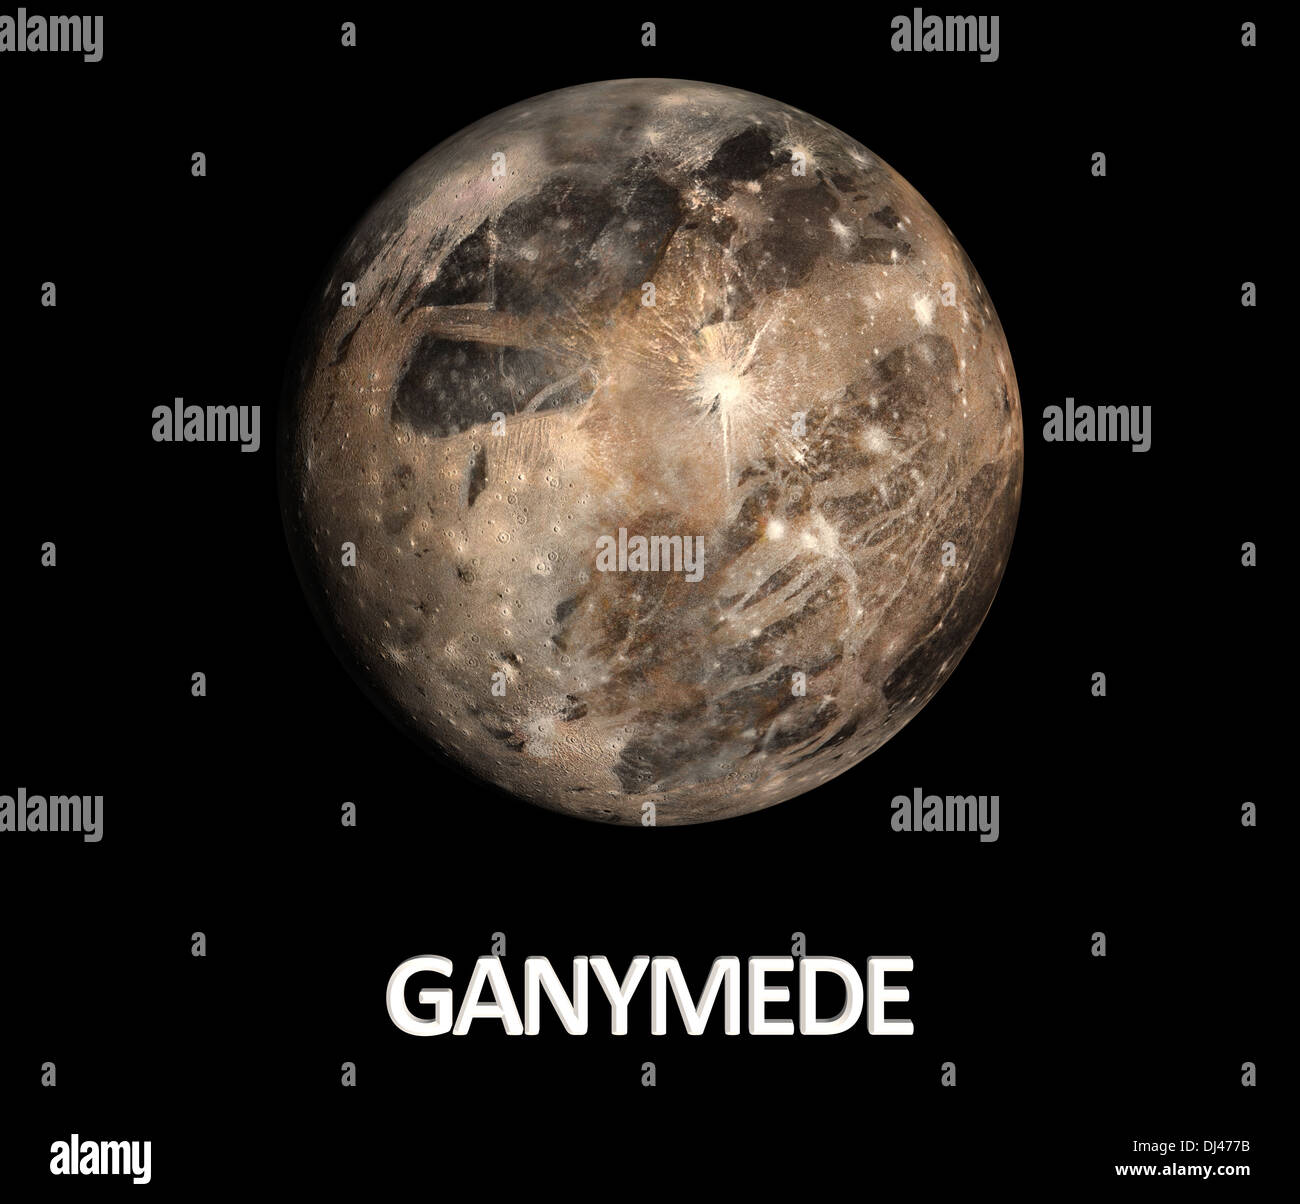 A rendered Image of the Jupitermoon Ganymede on a clean black background with english caption. - Stock Image